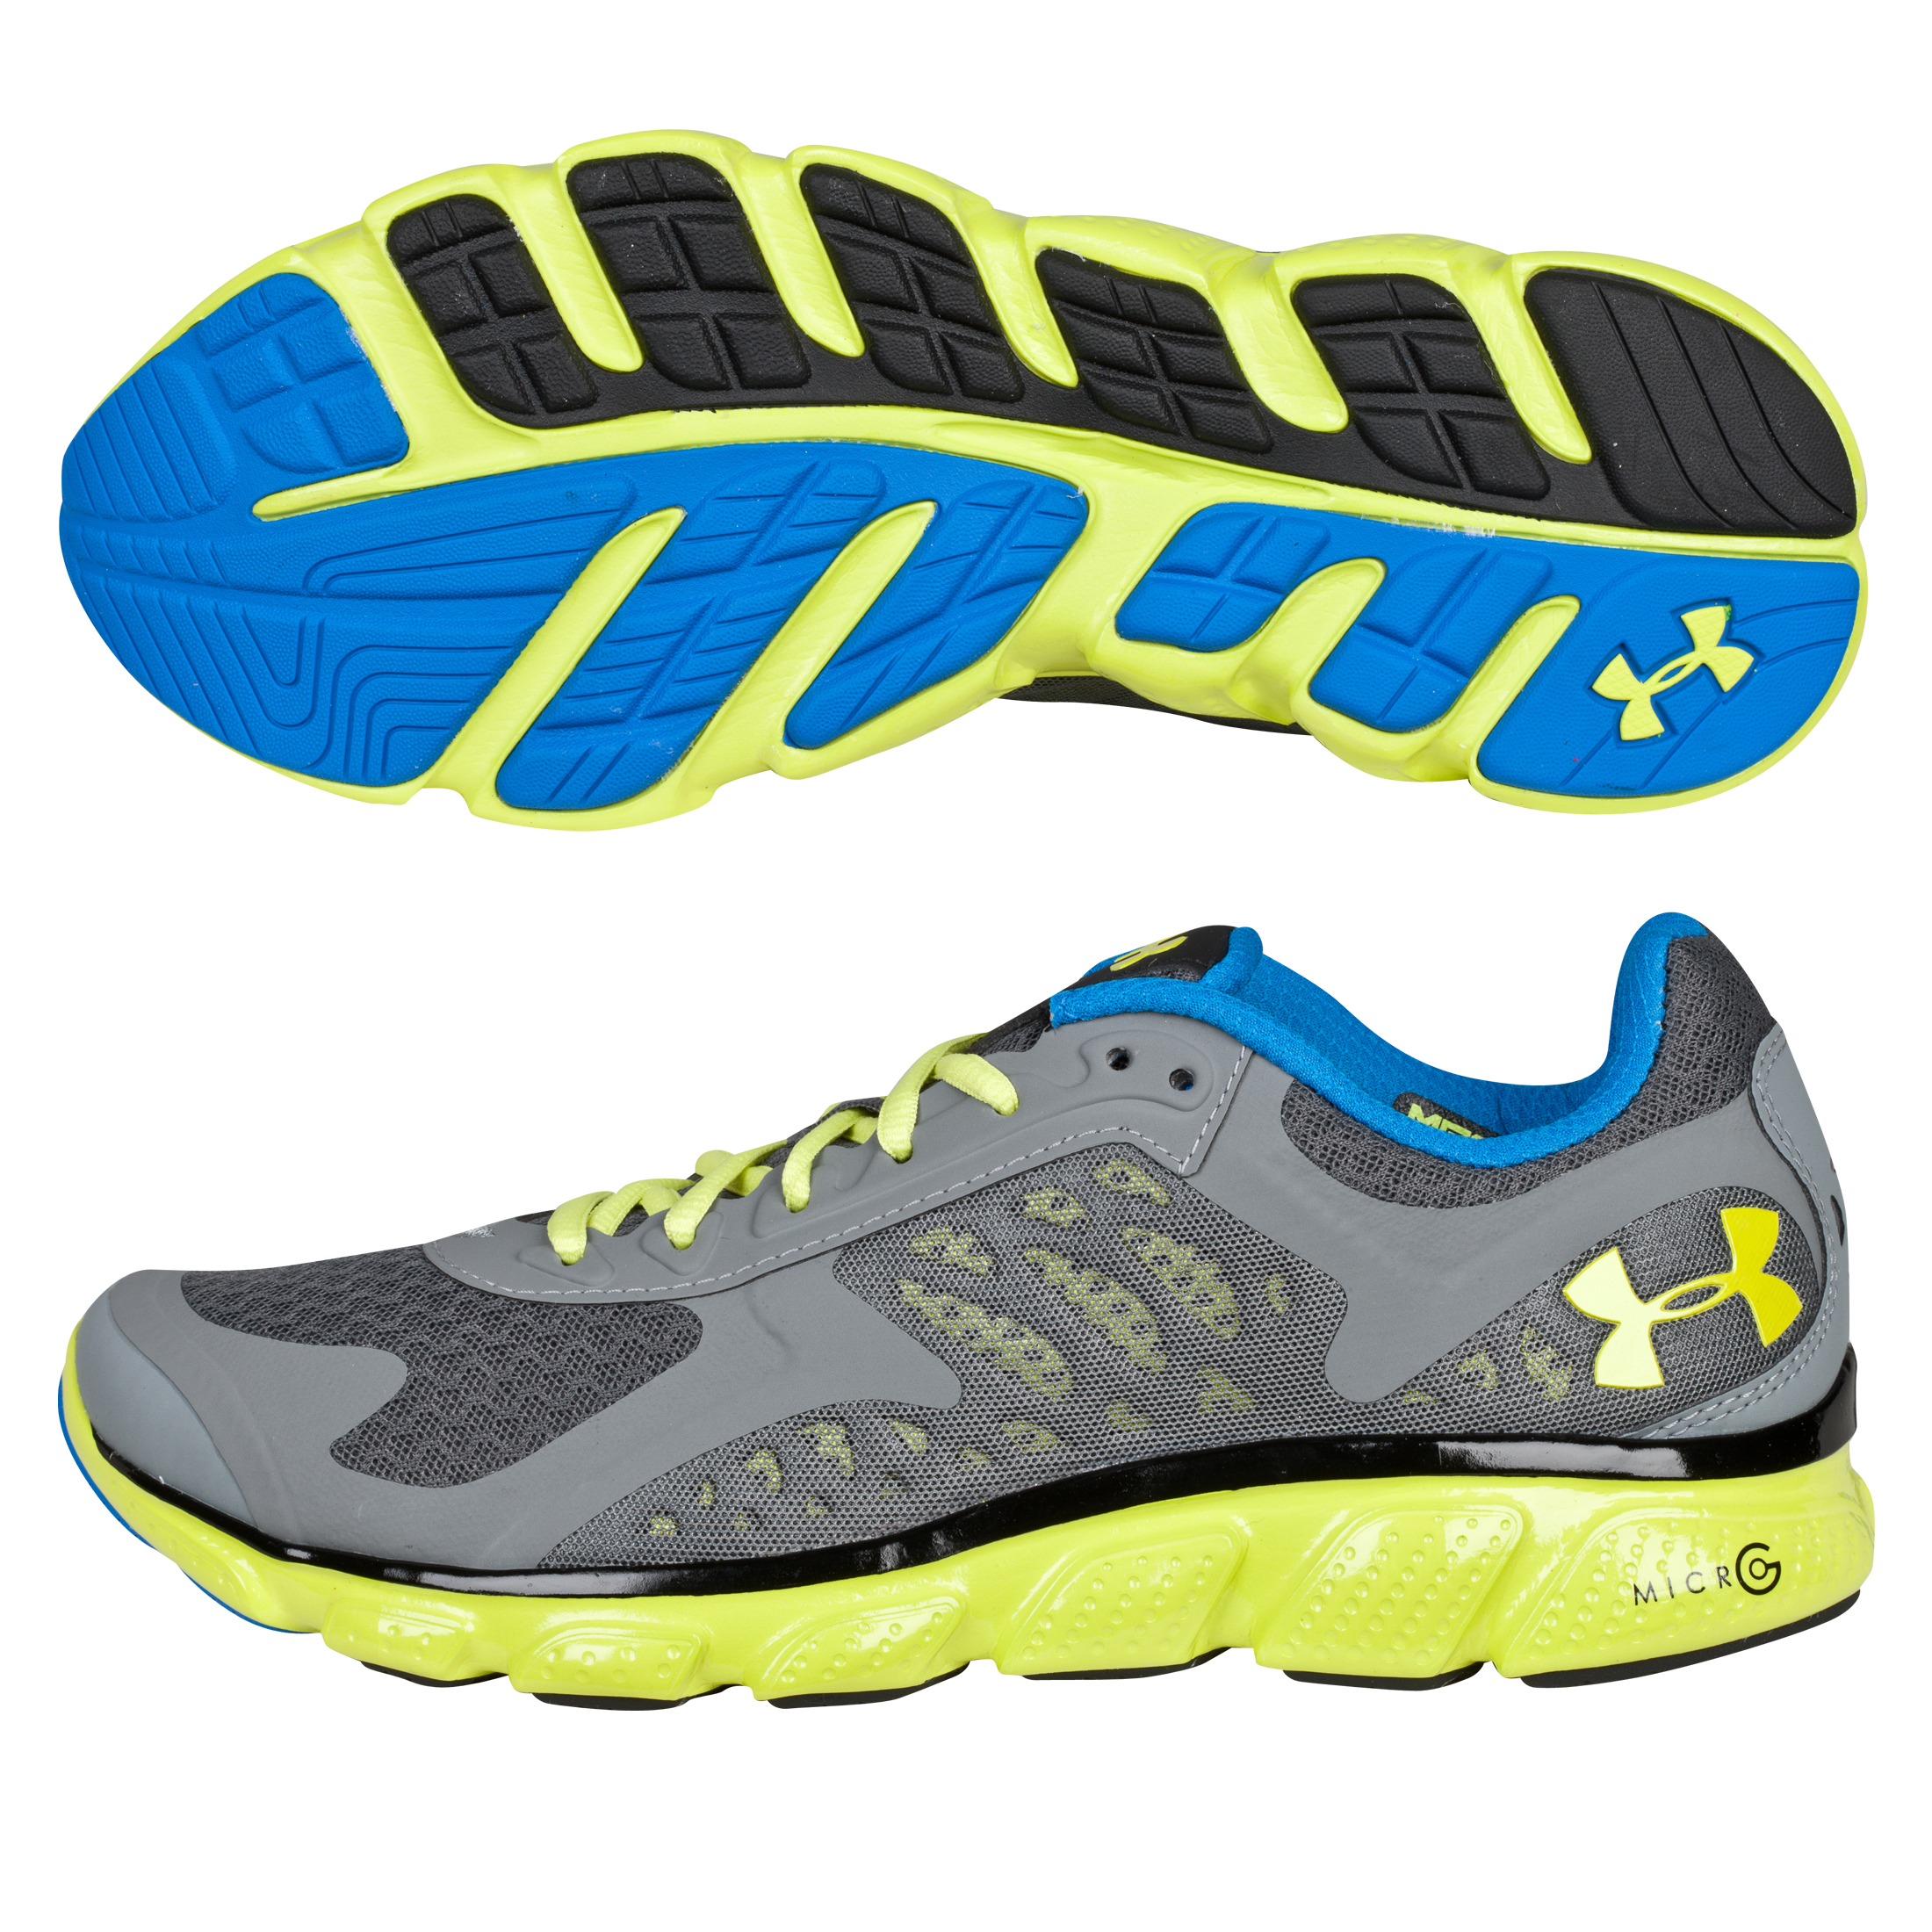 Under Armour ARMR Skulpt Trainer - Charcoal/Snorkel Blue/Lime